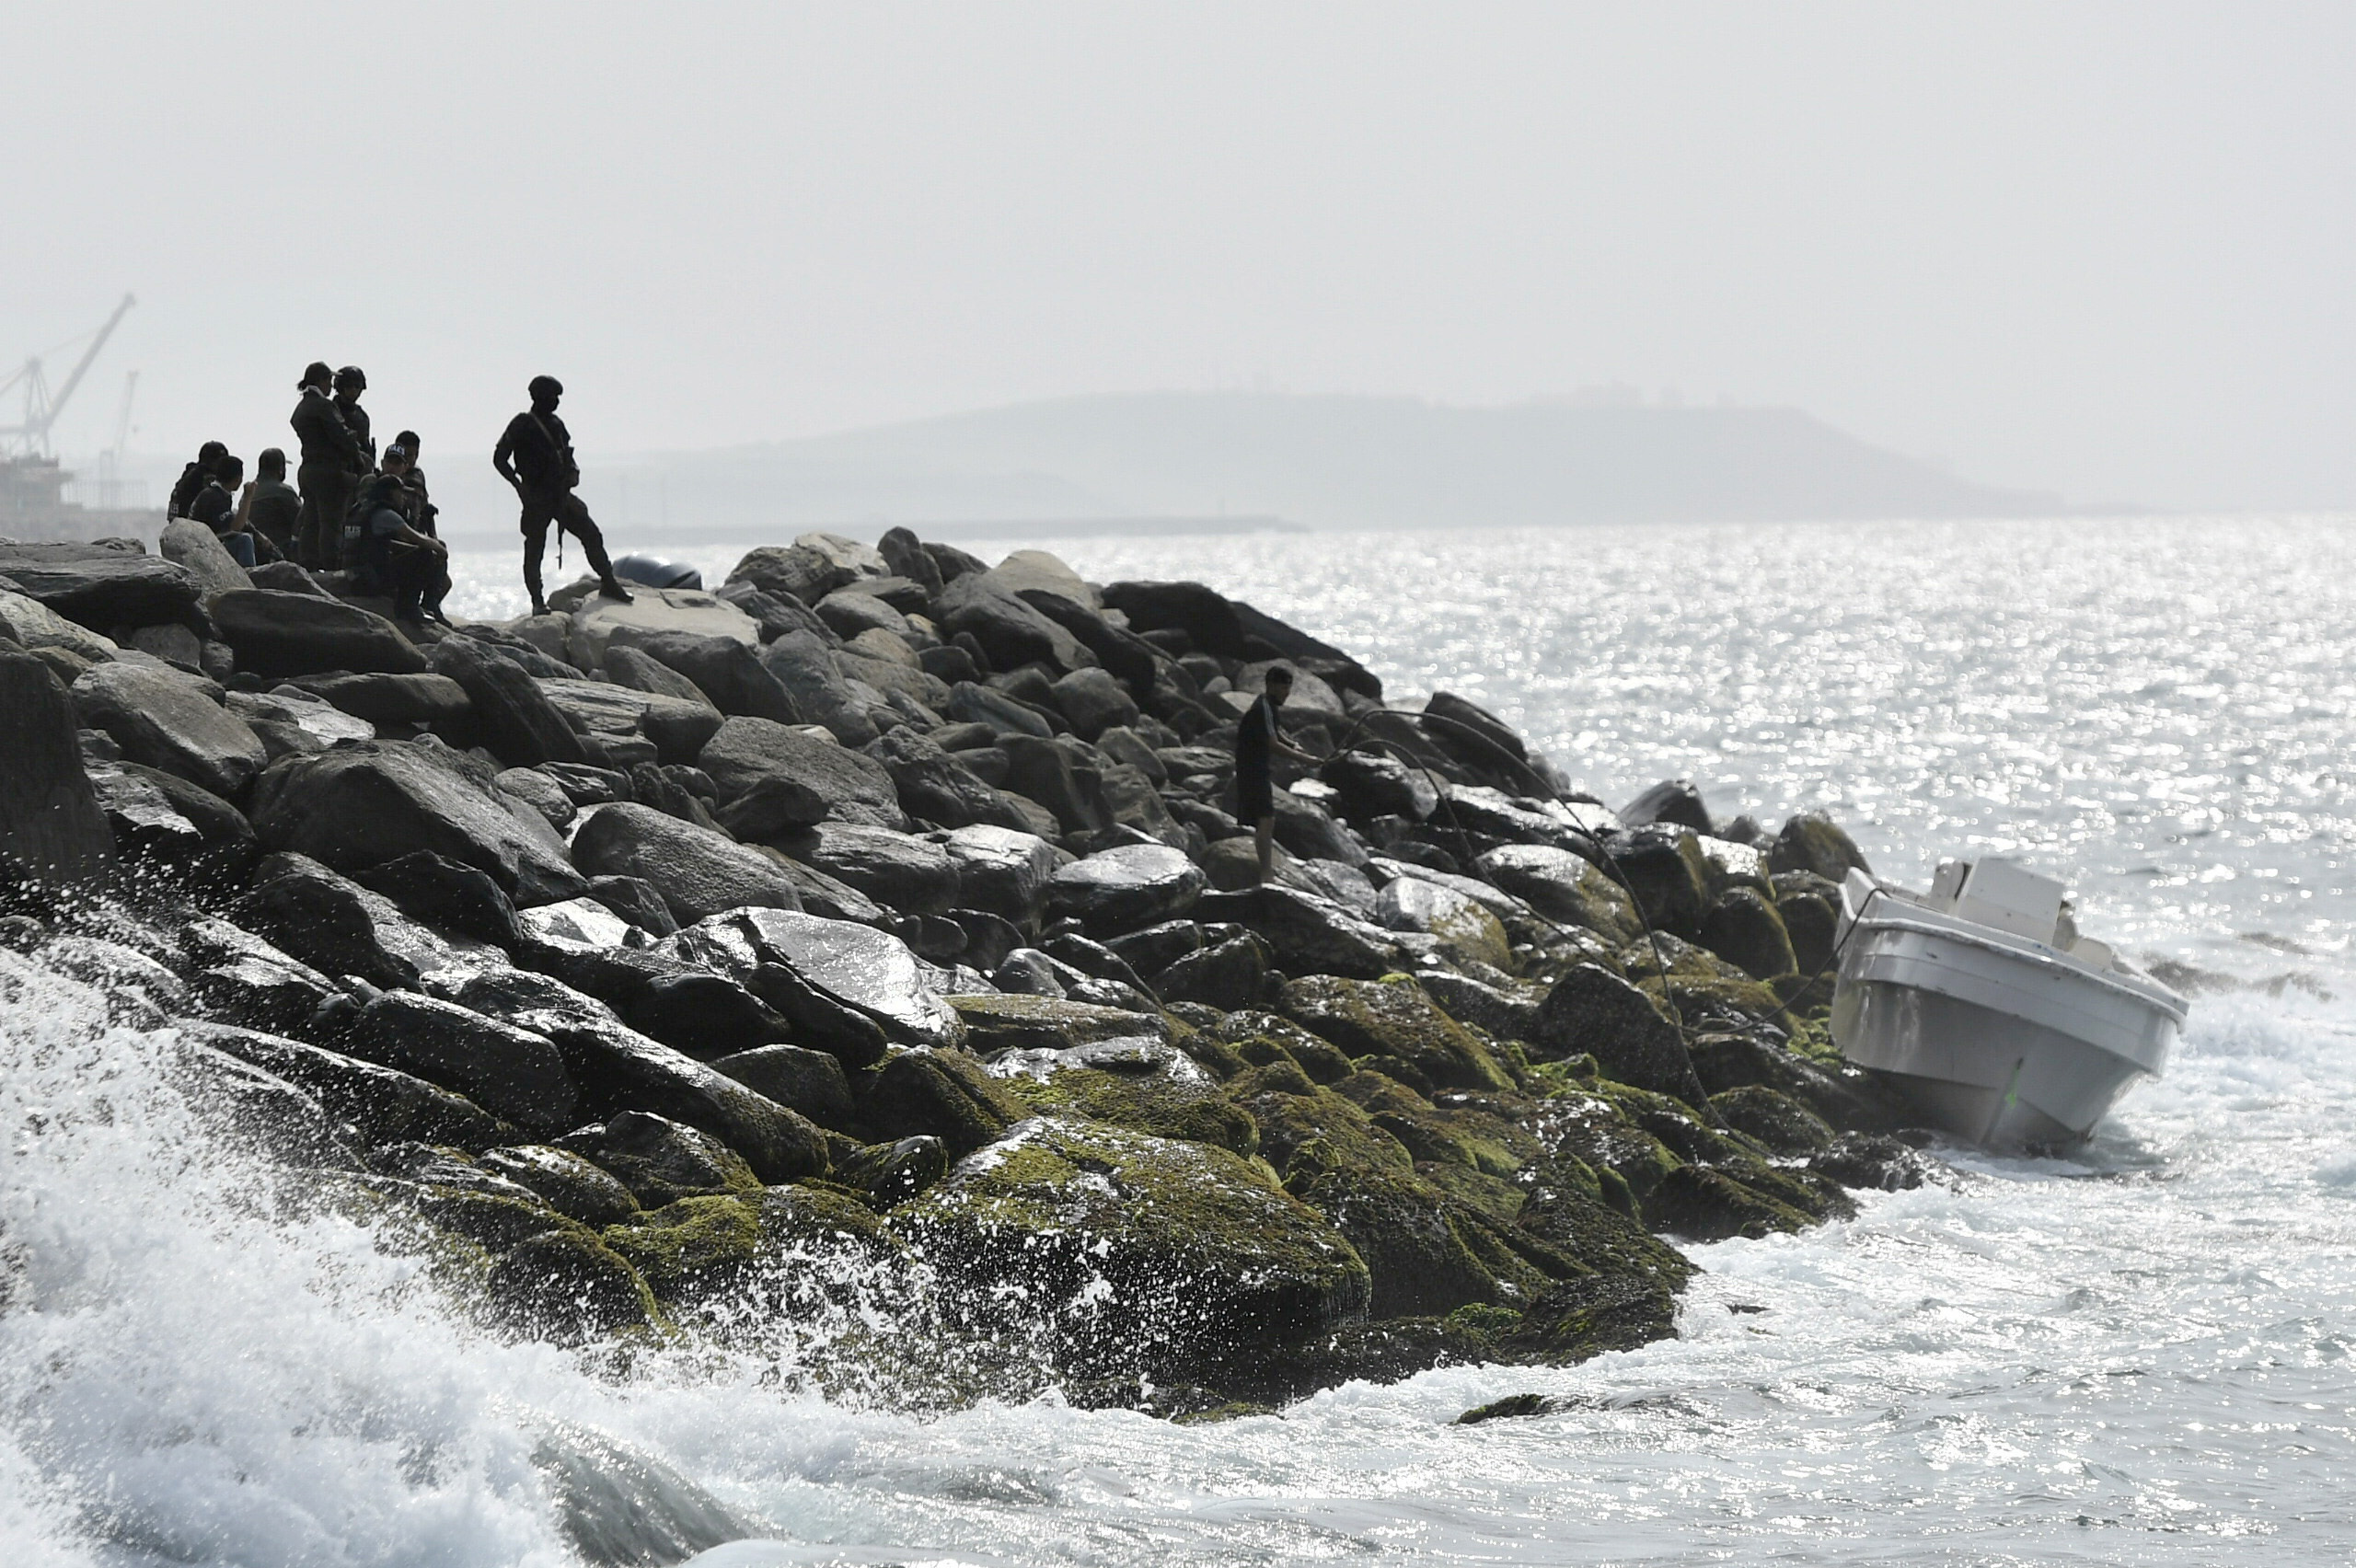 Security forces guard the shore area and a boat